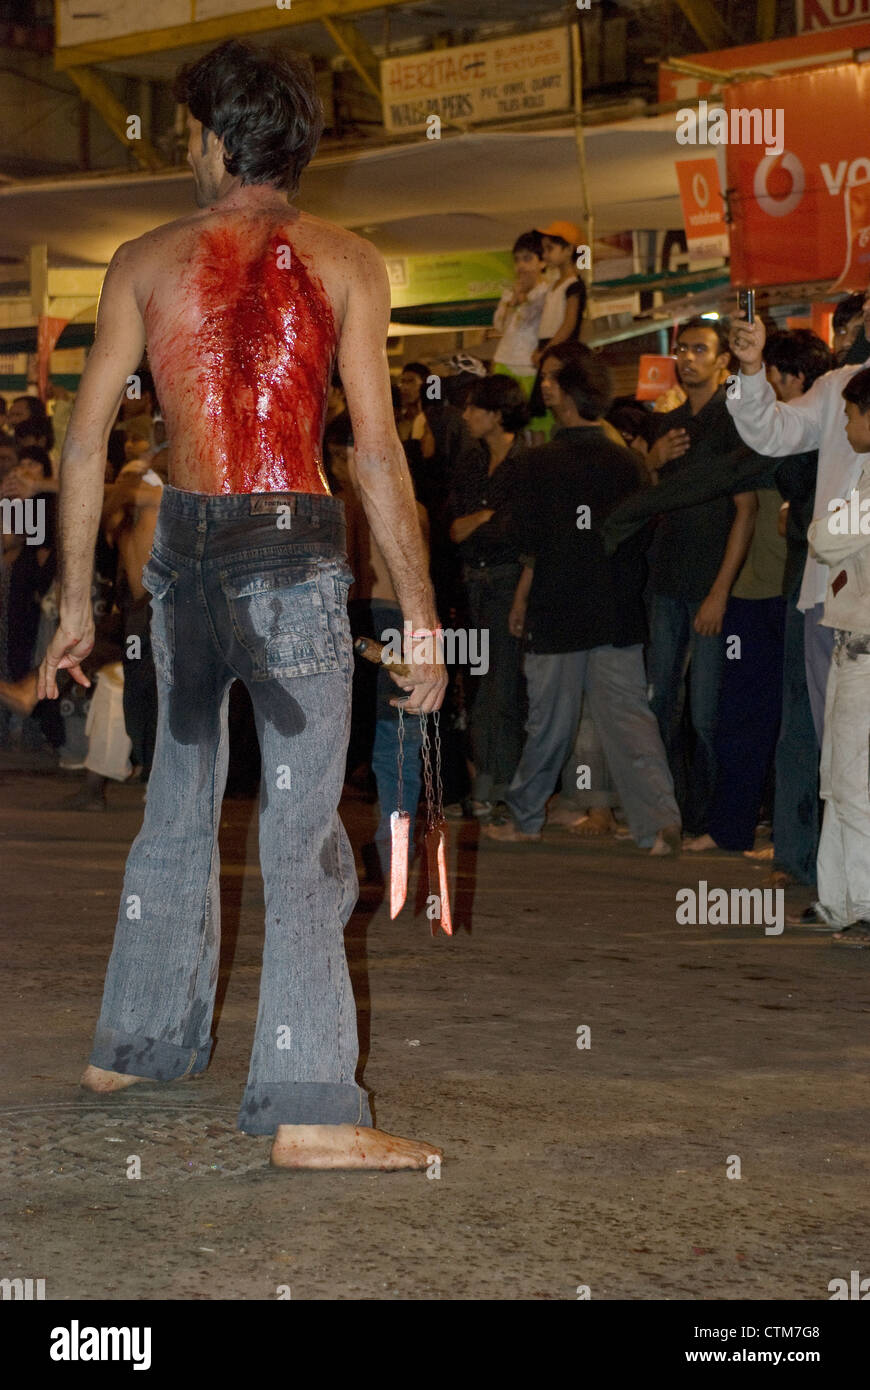 Bloodied devoted Shiite Muslim standing with his knives used to flagellate himself - Ashura festival, Mumbai, Maharashtra. - Stock Image